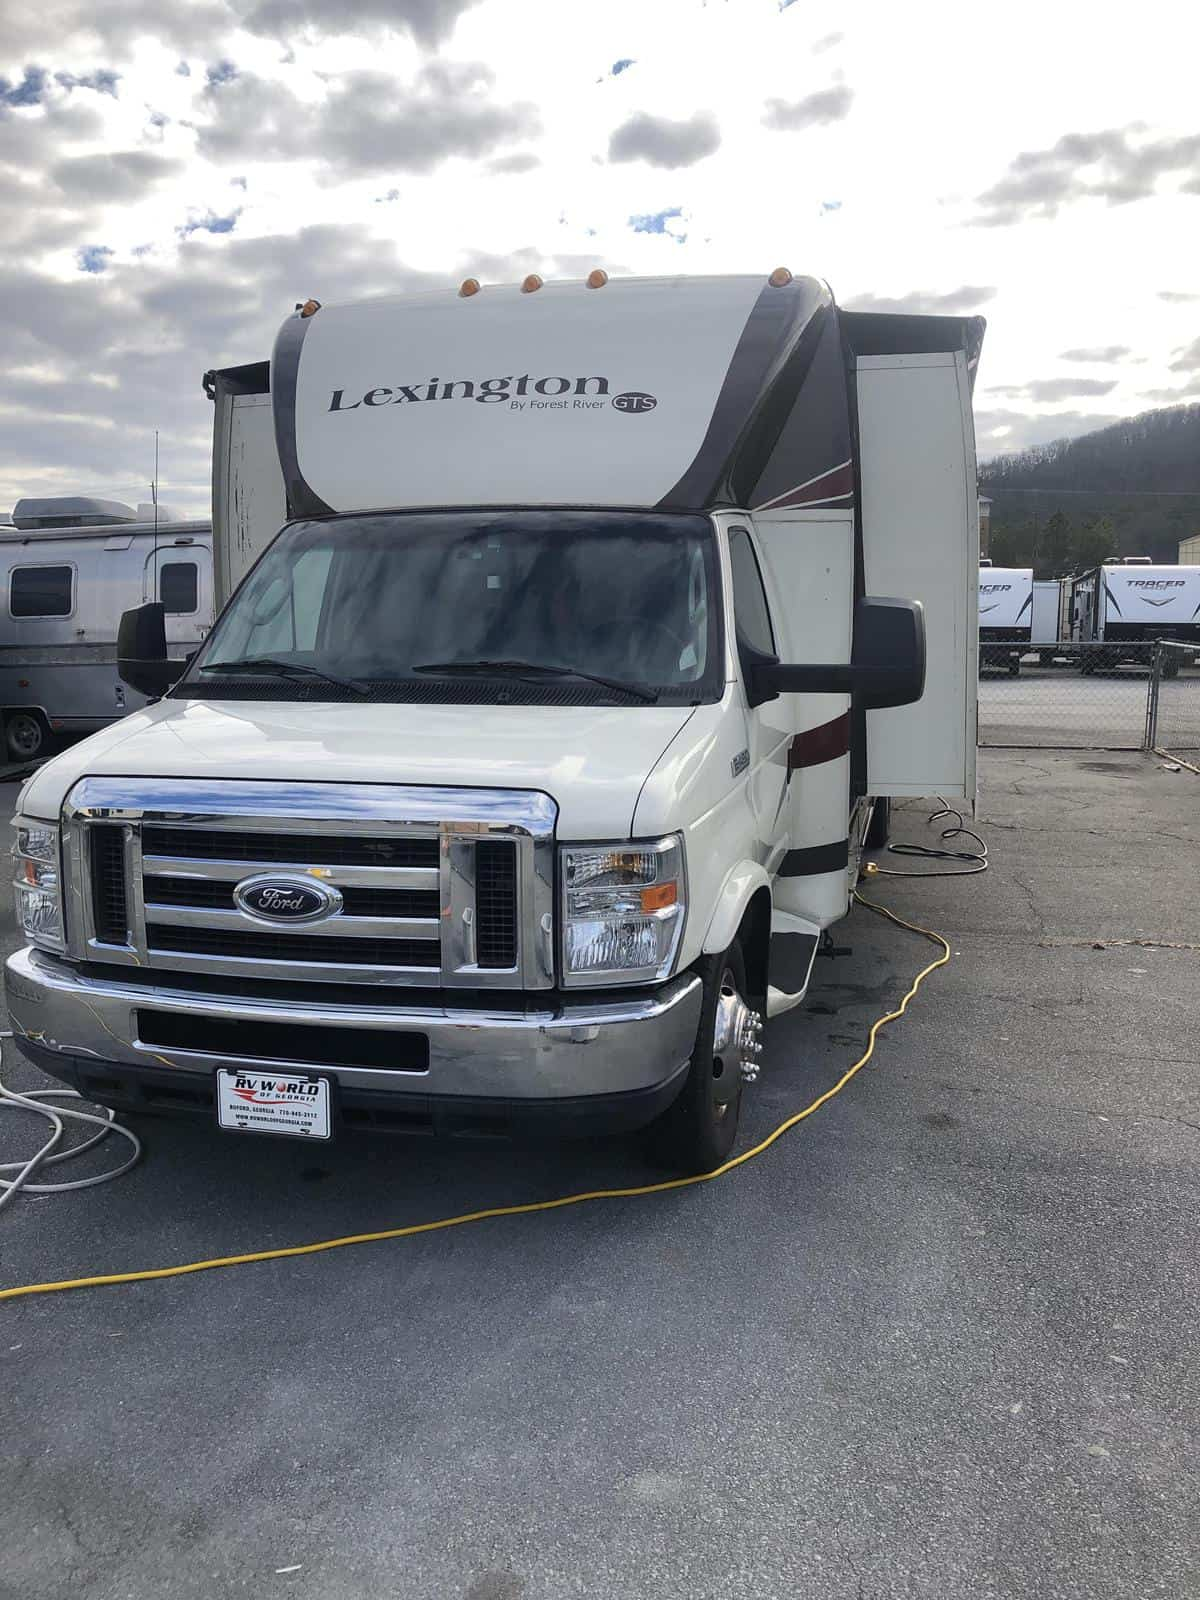 Used RVs For Sale | Georgia RV Dealer | Marietta, GA